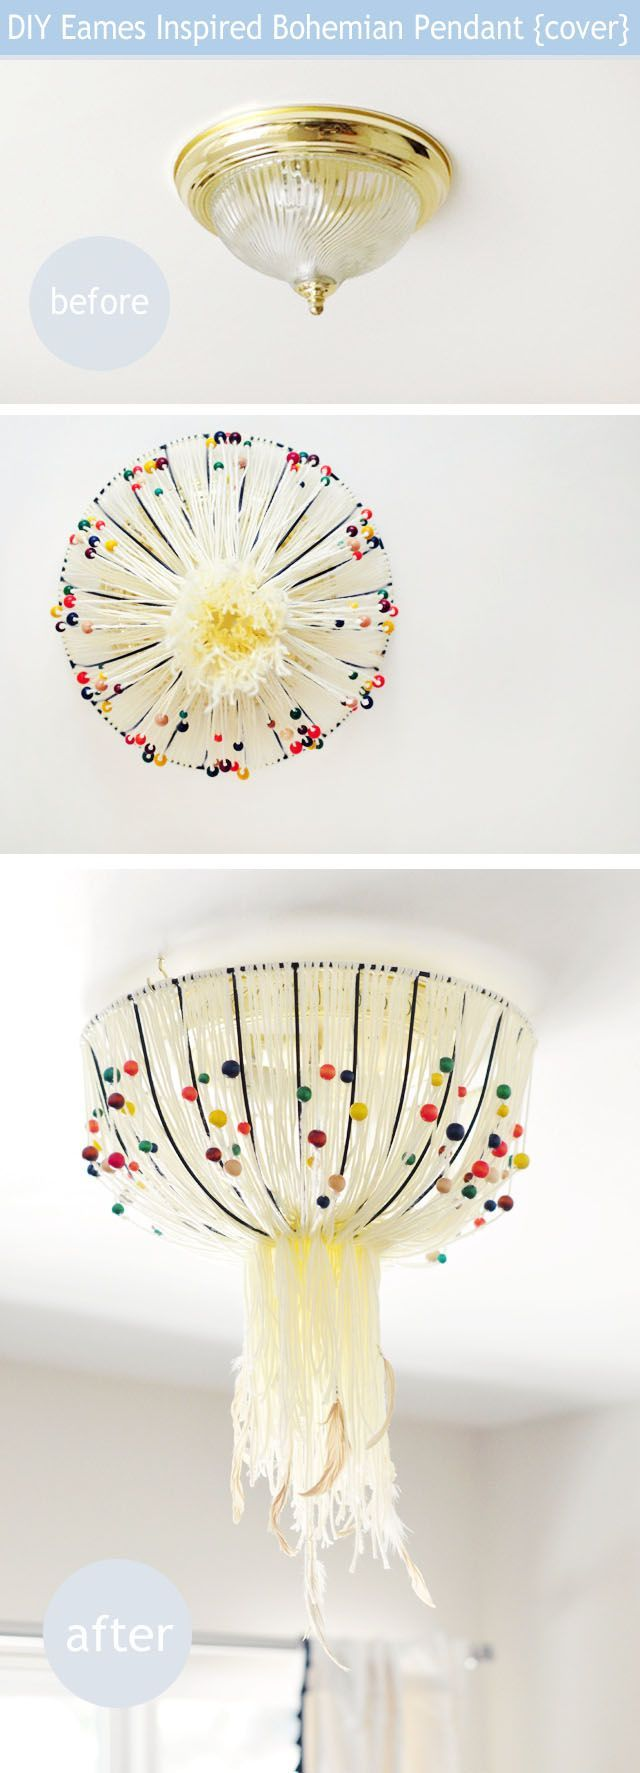 Diy eames inspired bohemian pendant lamp to cover old - Diy ceiling light cover ...